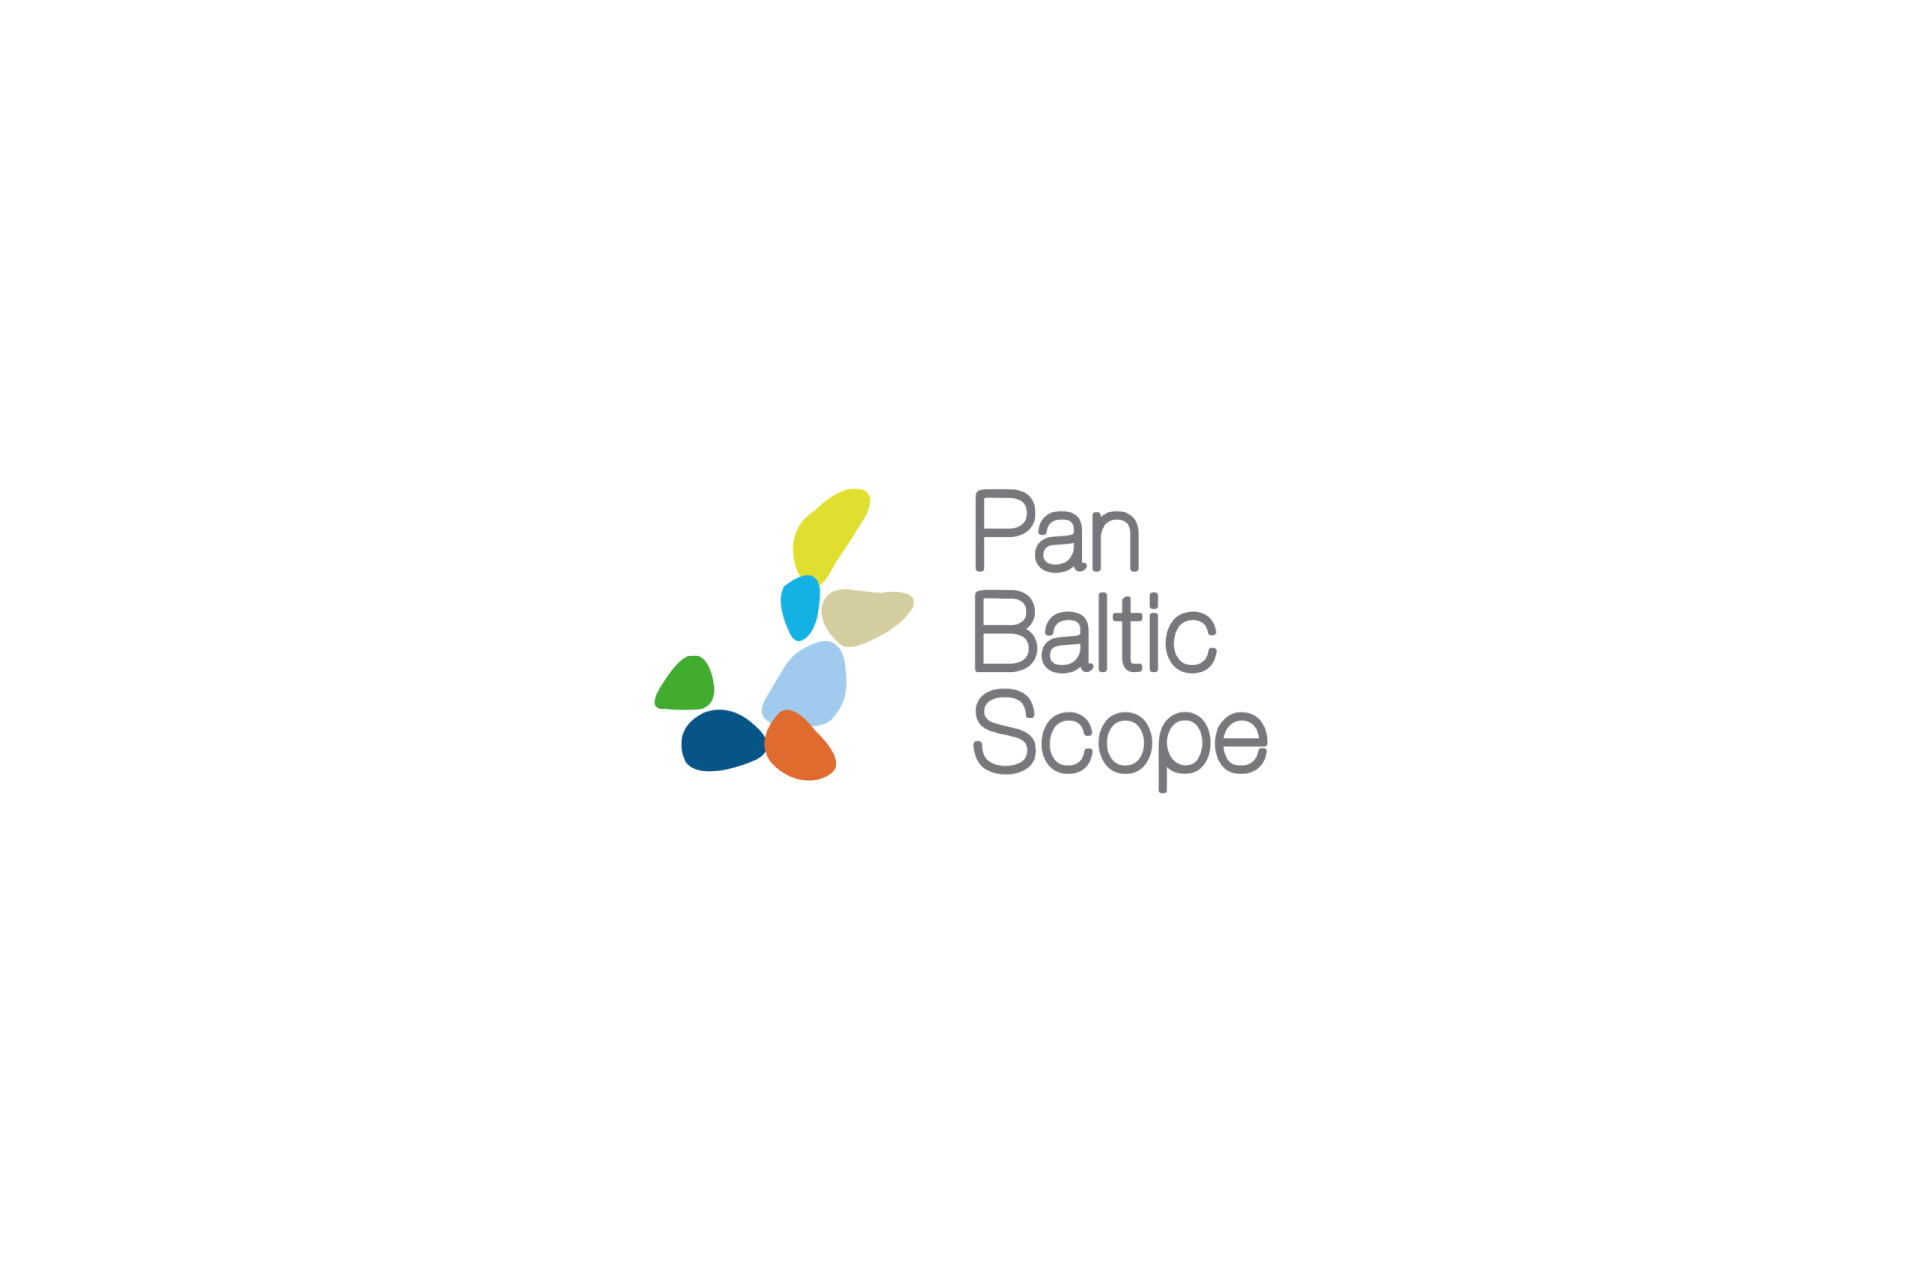 Pan-Baltic-Scope